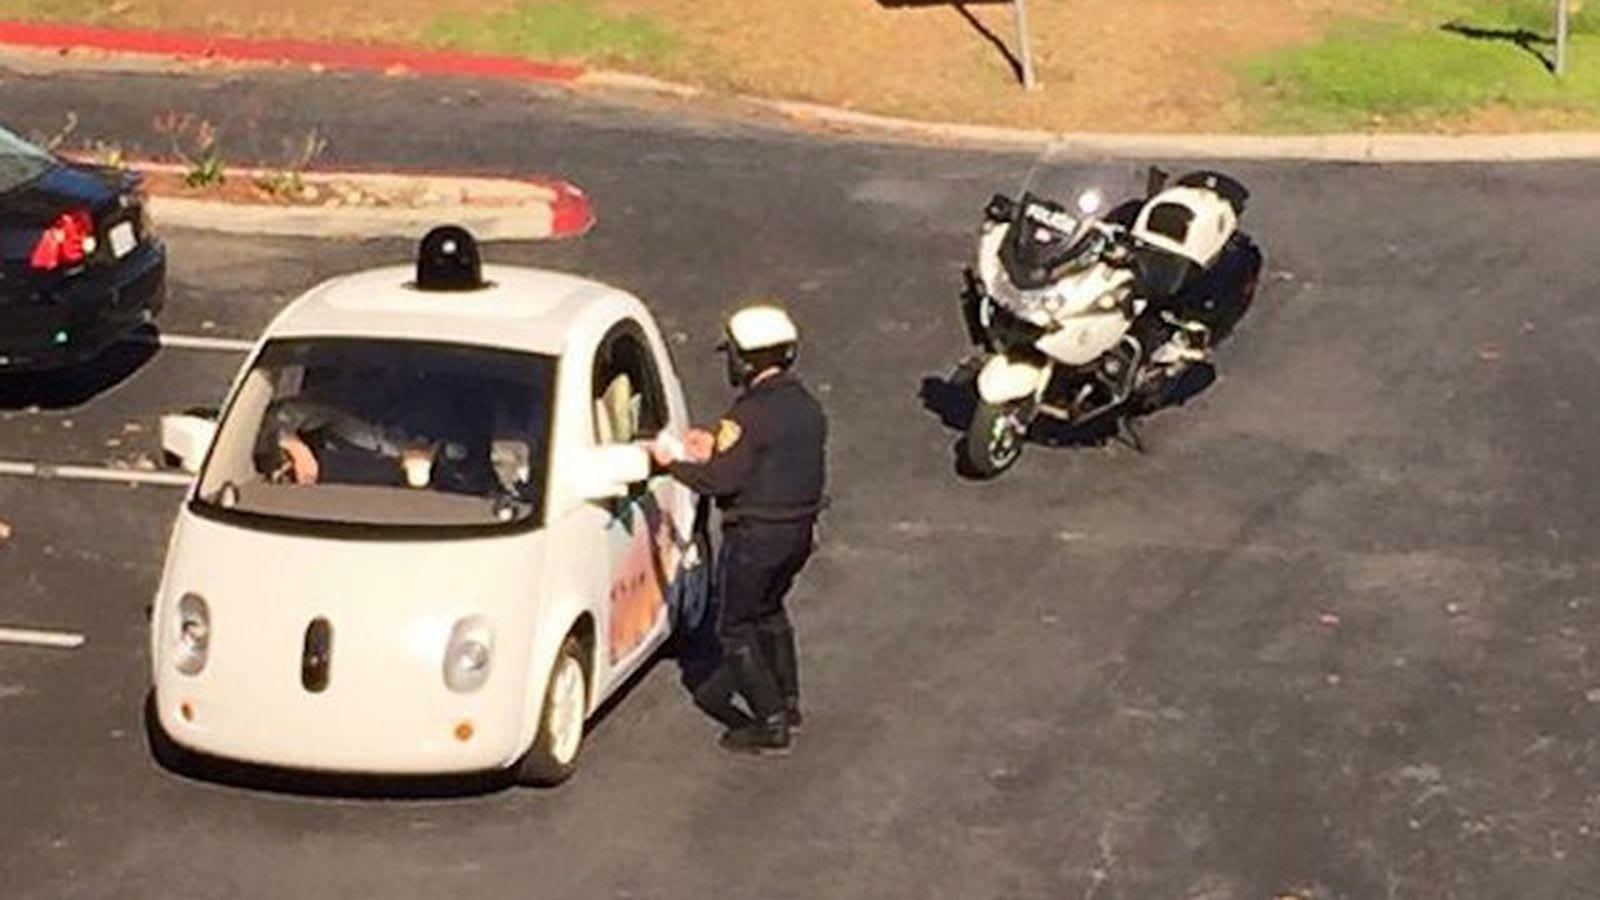 Google's Self-Driving Car Hit Another Vehicle for the First Time